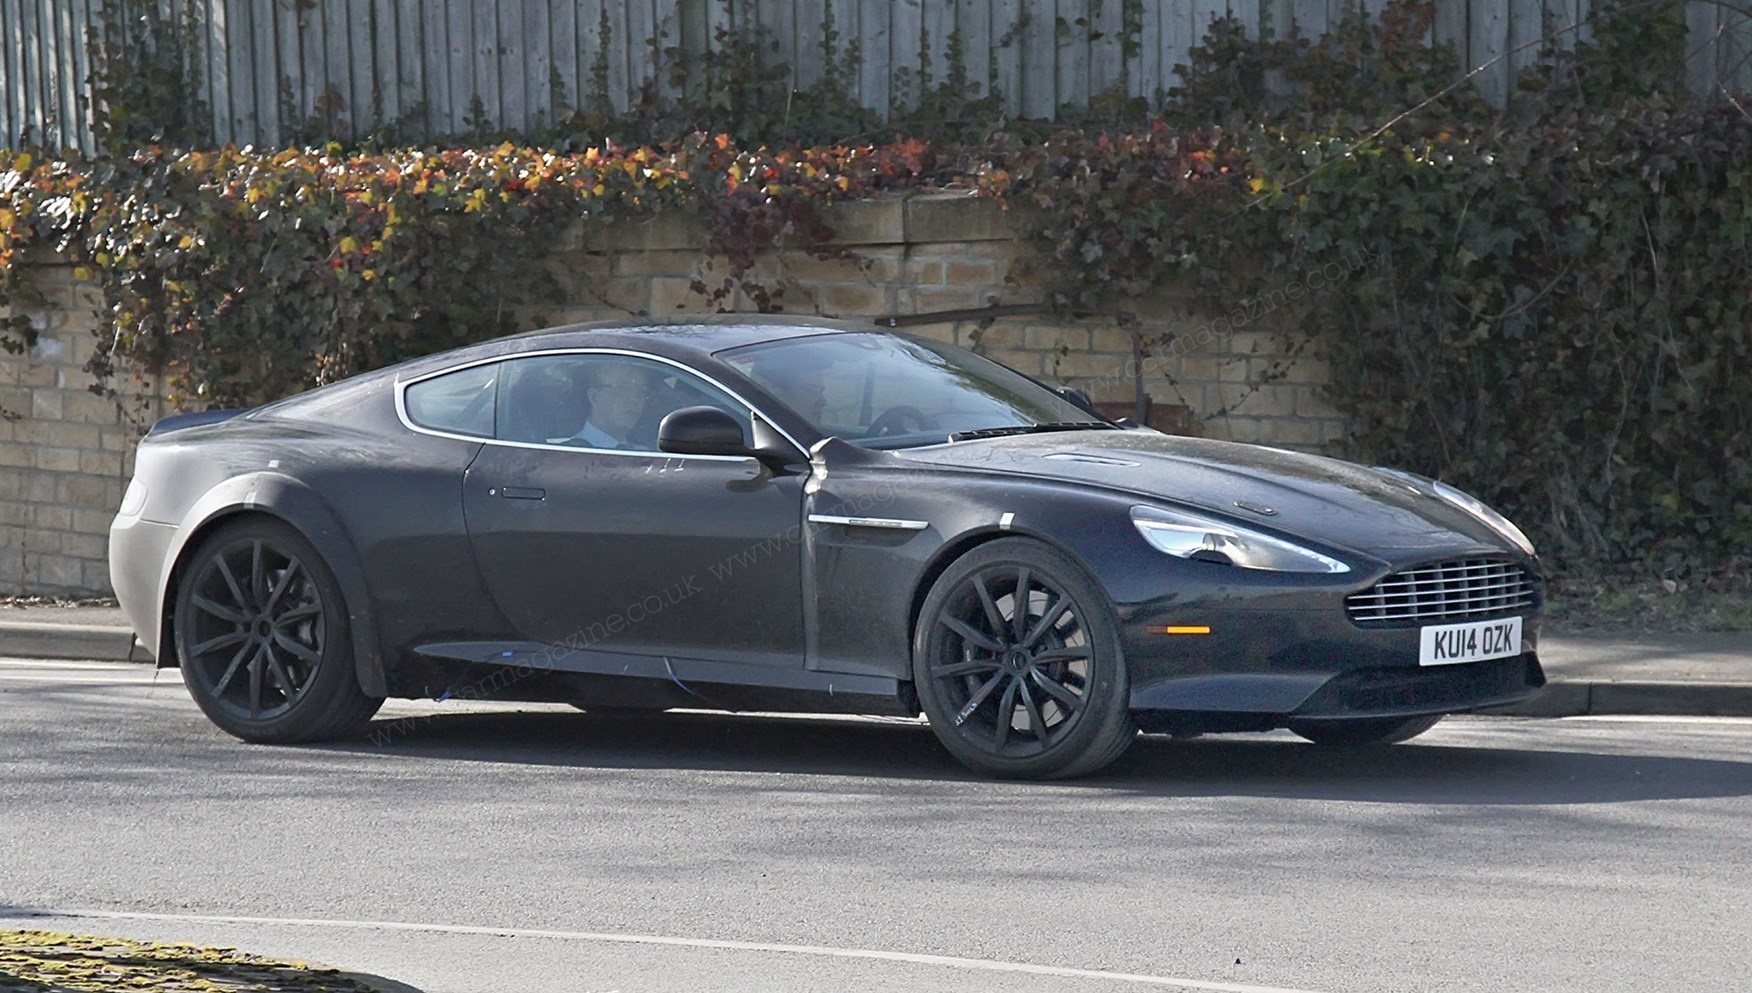 new aston martin db11 readies for 2016 launch: all the latest on